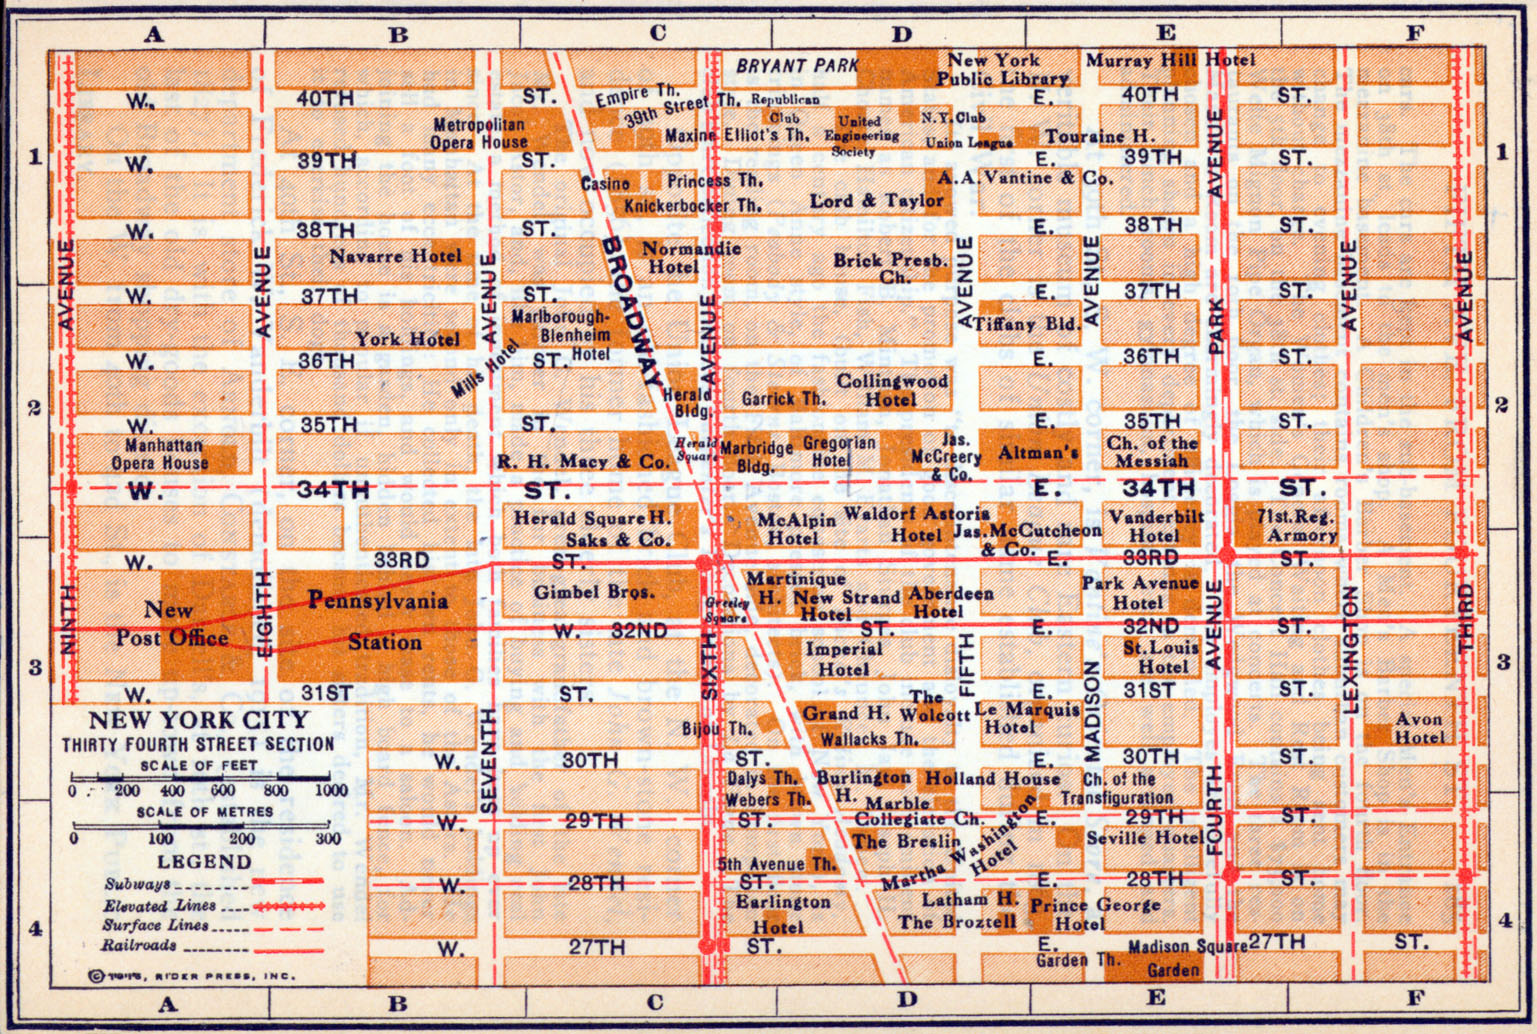 New York Maps PerryCasta eda Map Collection UT Library Online – Street Maps of New York City